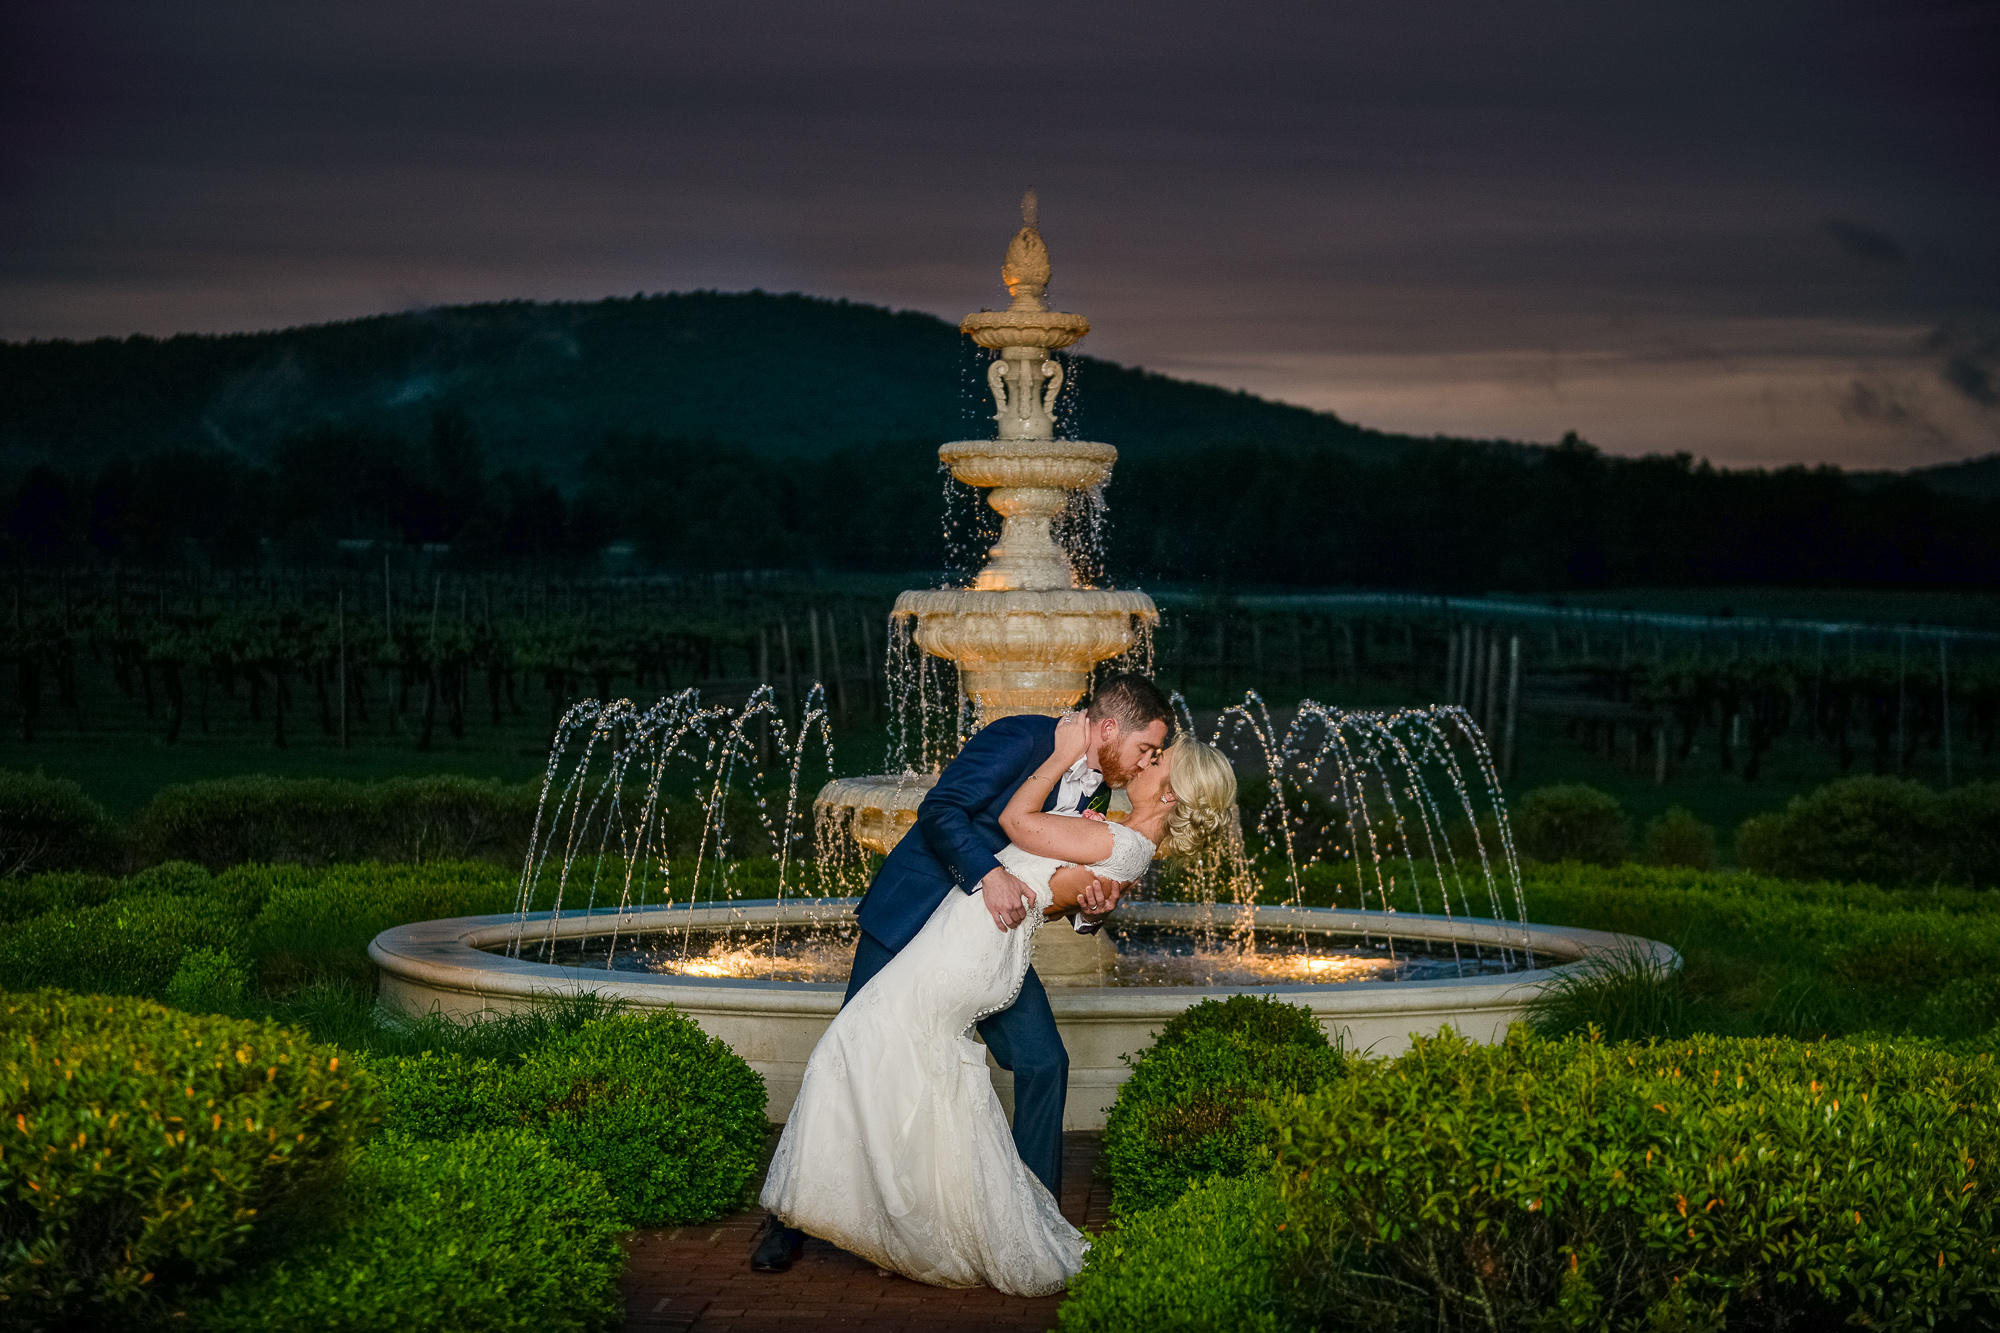 The bride and groom kiss outside the fountain at night outside Keswick Vineyards in Charlottesville, Virginia